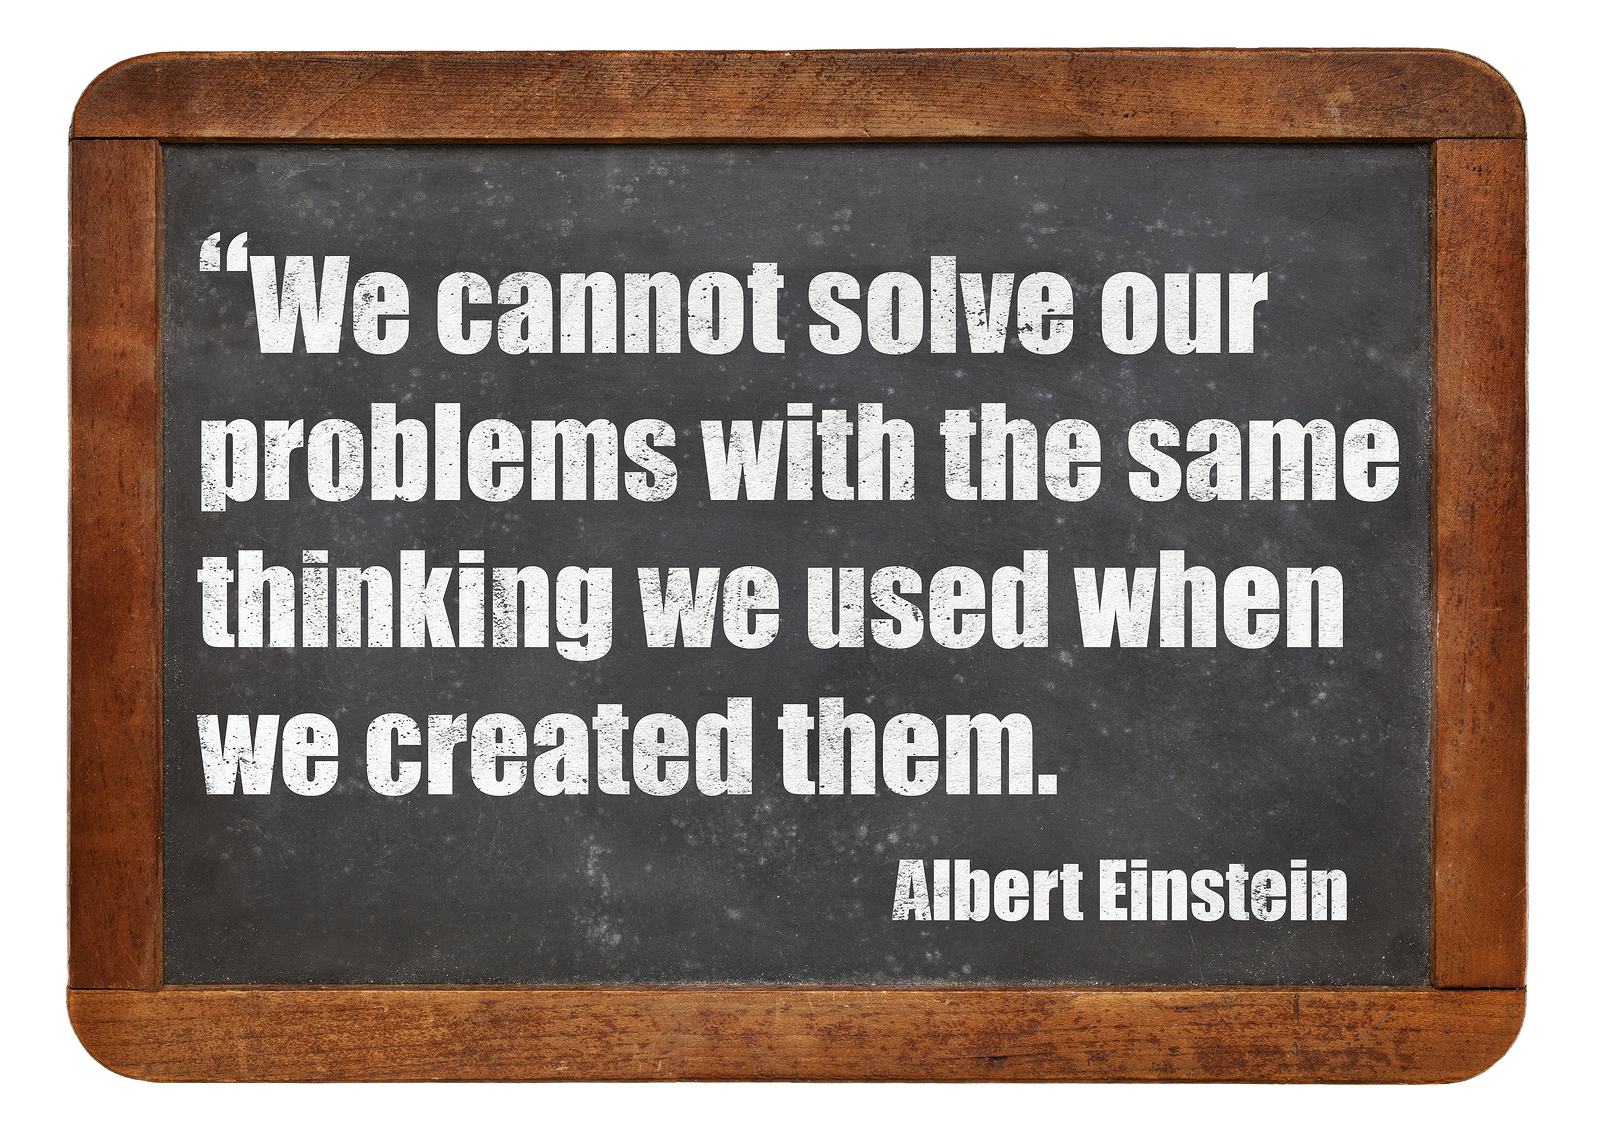 We cannot solve our problems with the same thinking we used when